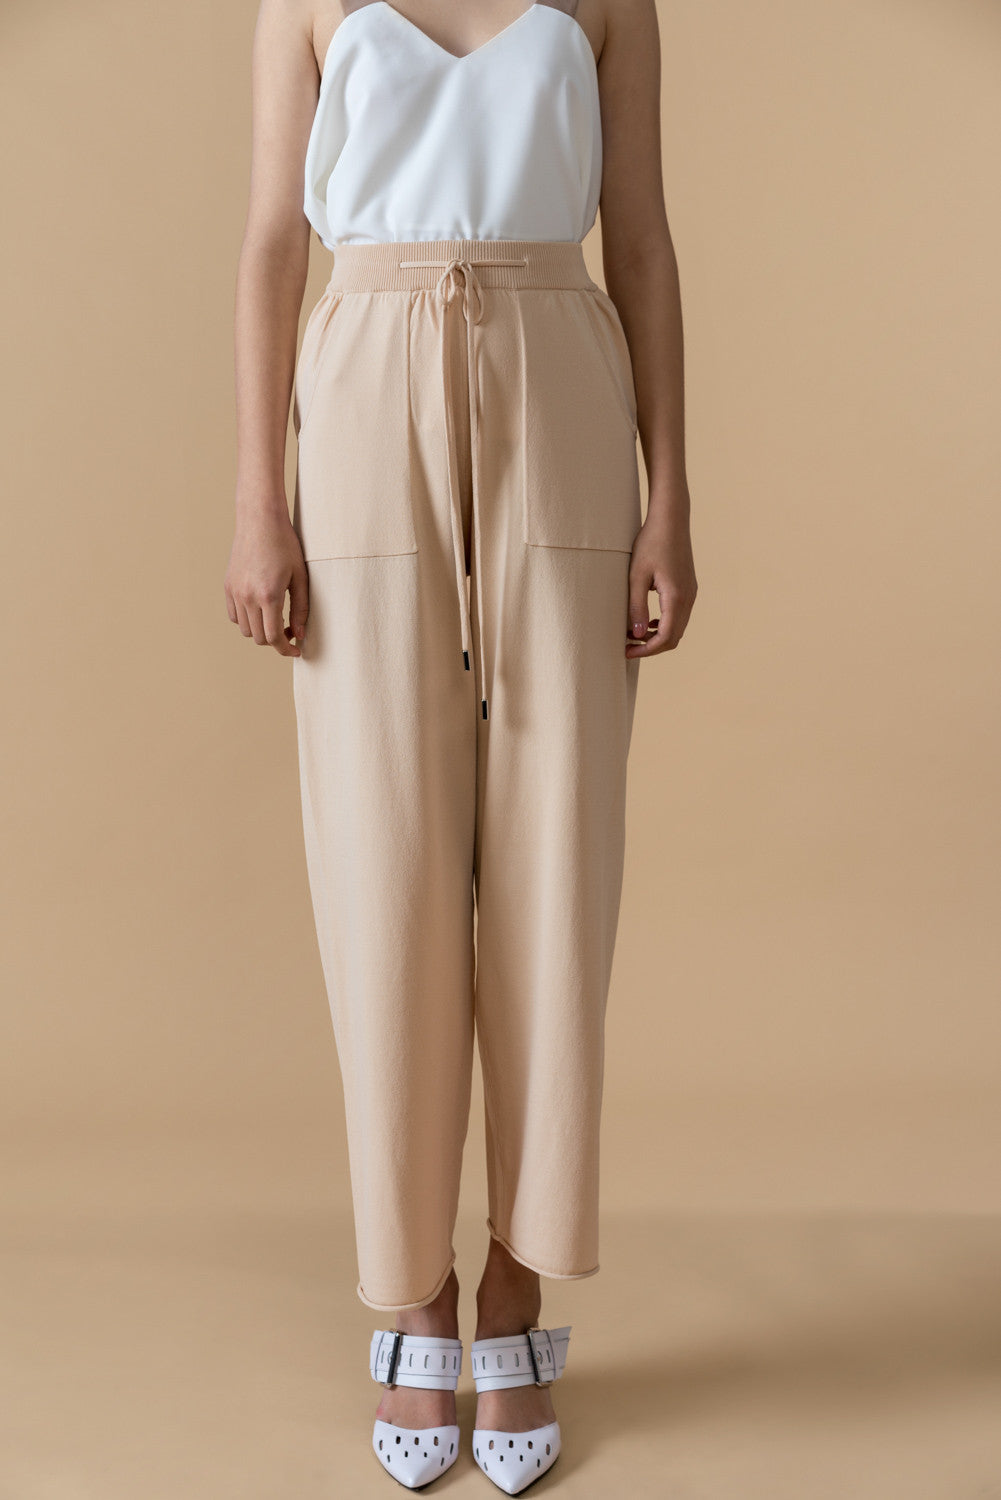 Loose High Waist Sweatpants